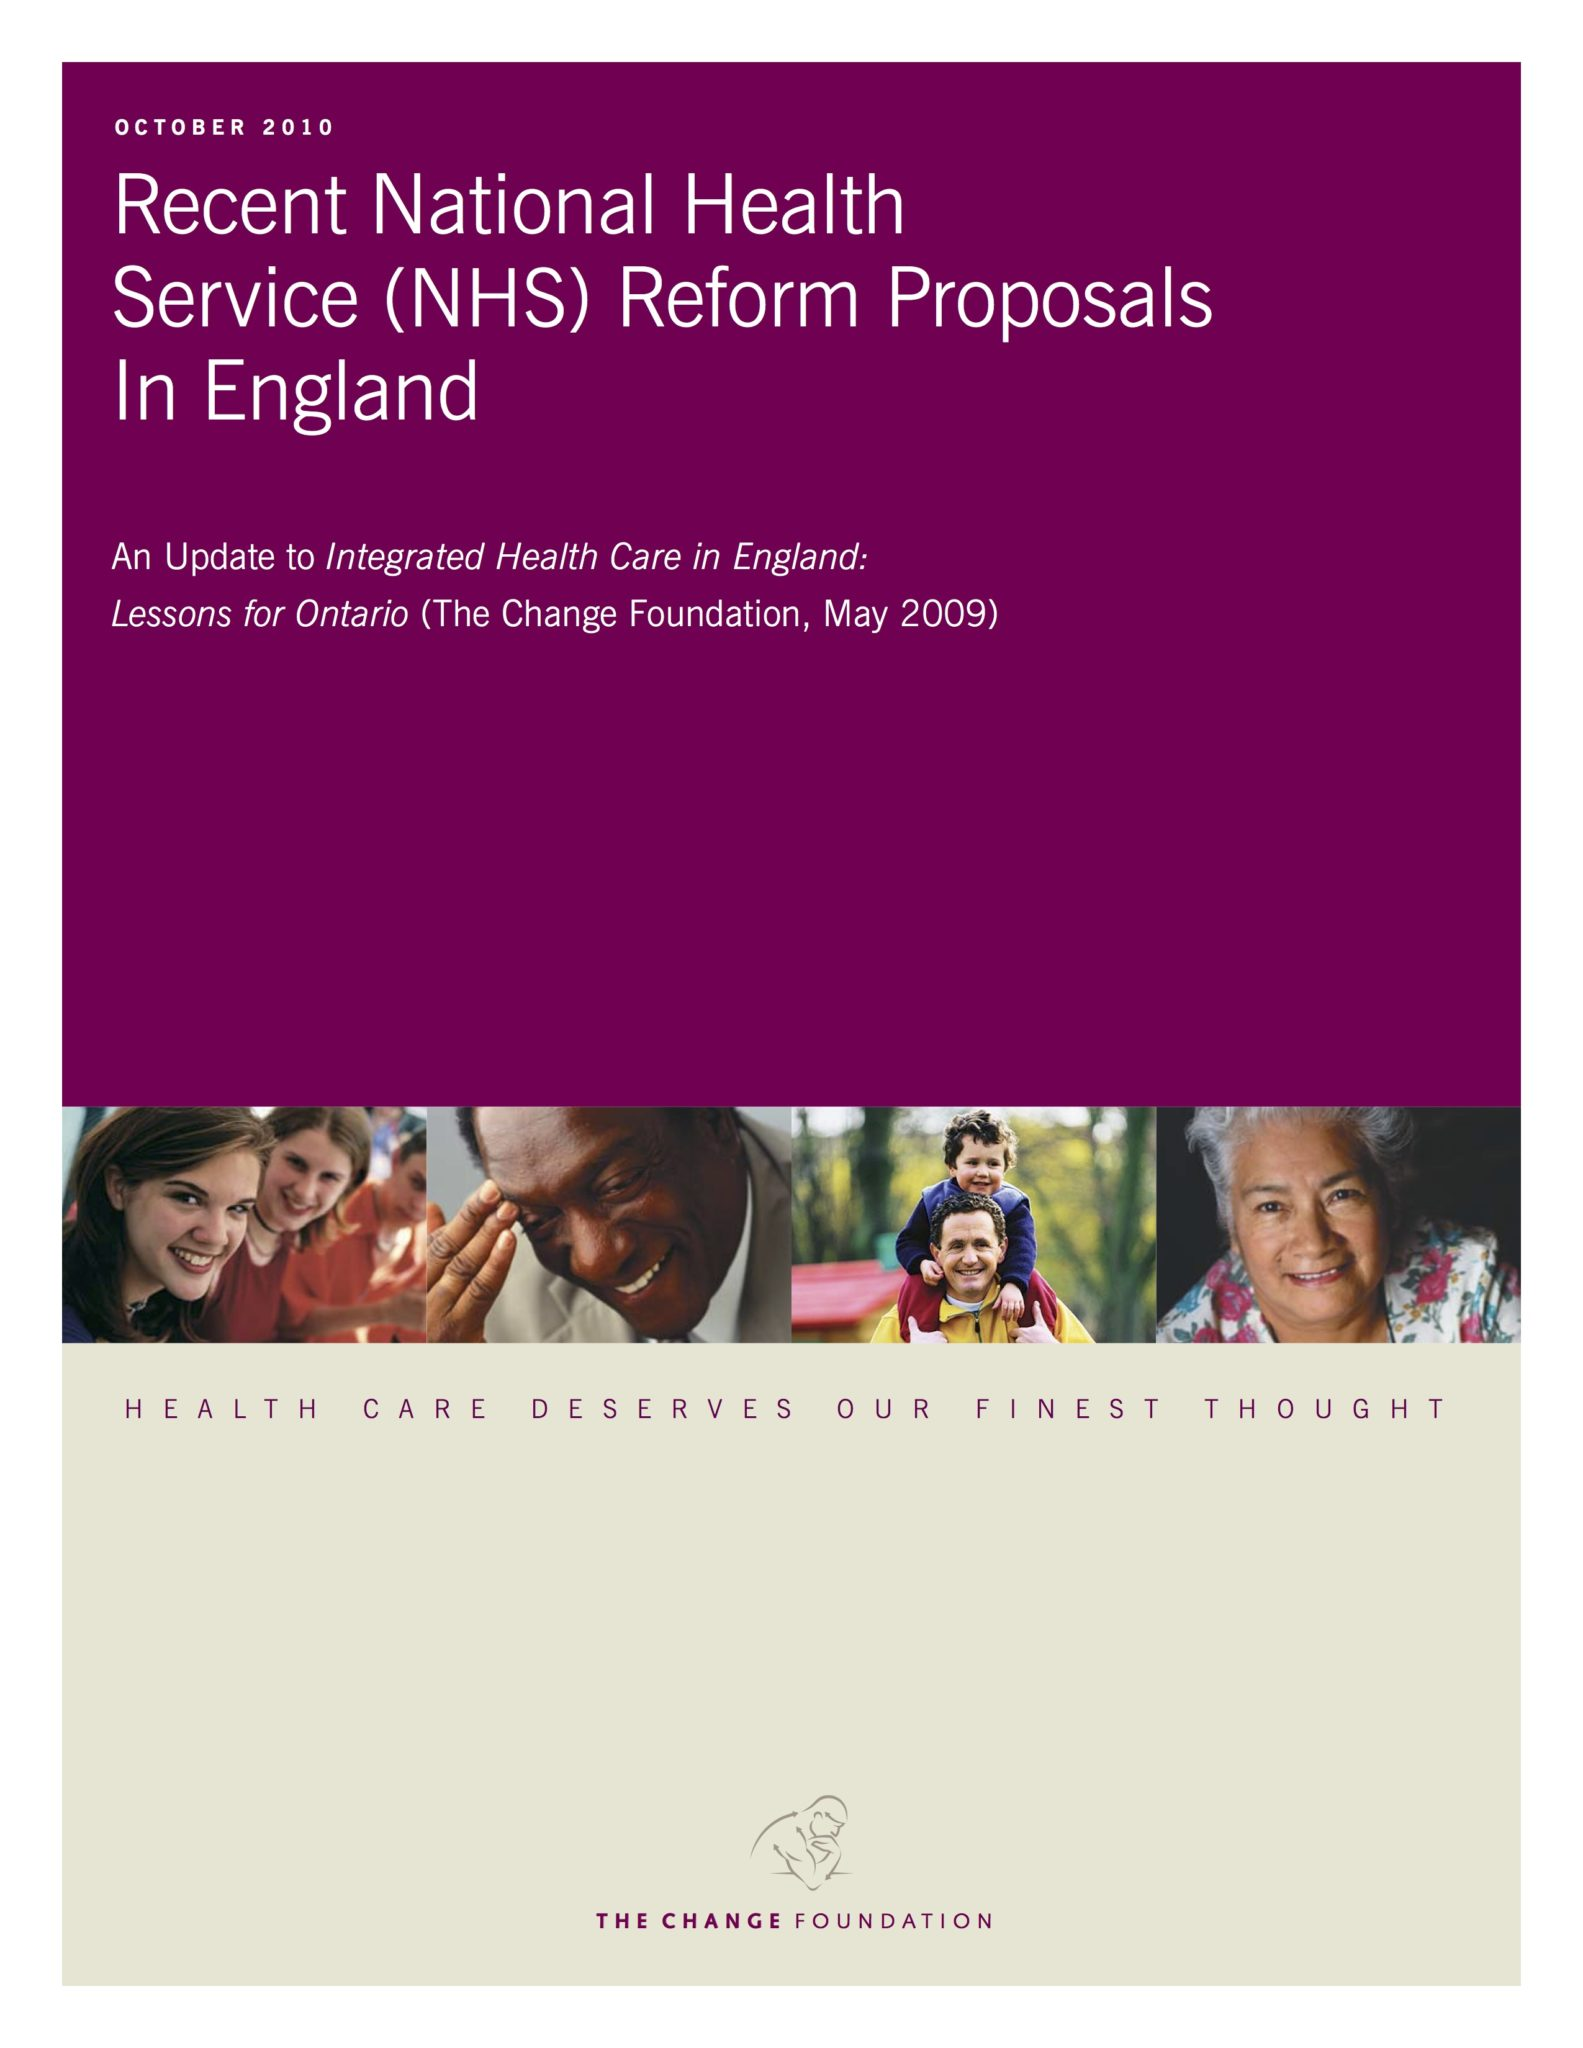 Integrated Healthcare in England: An Update